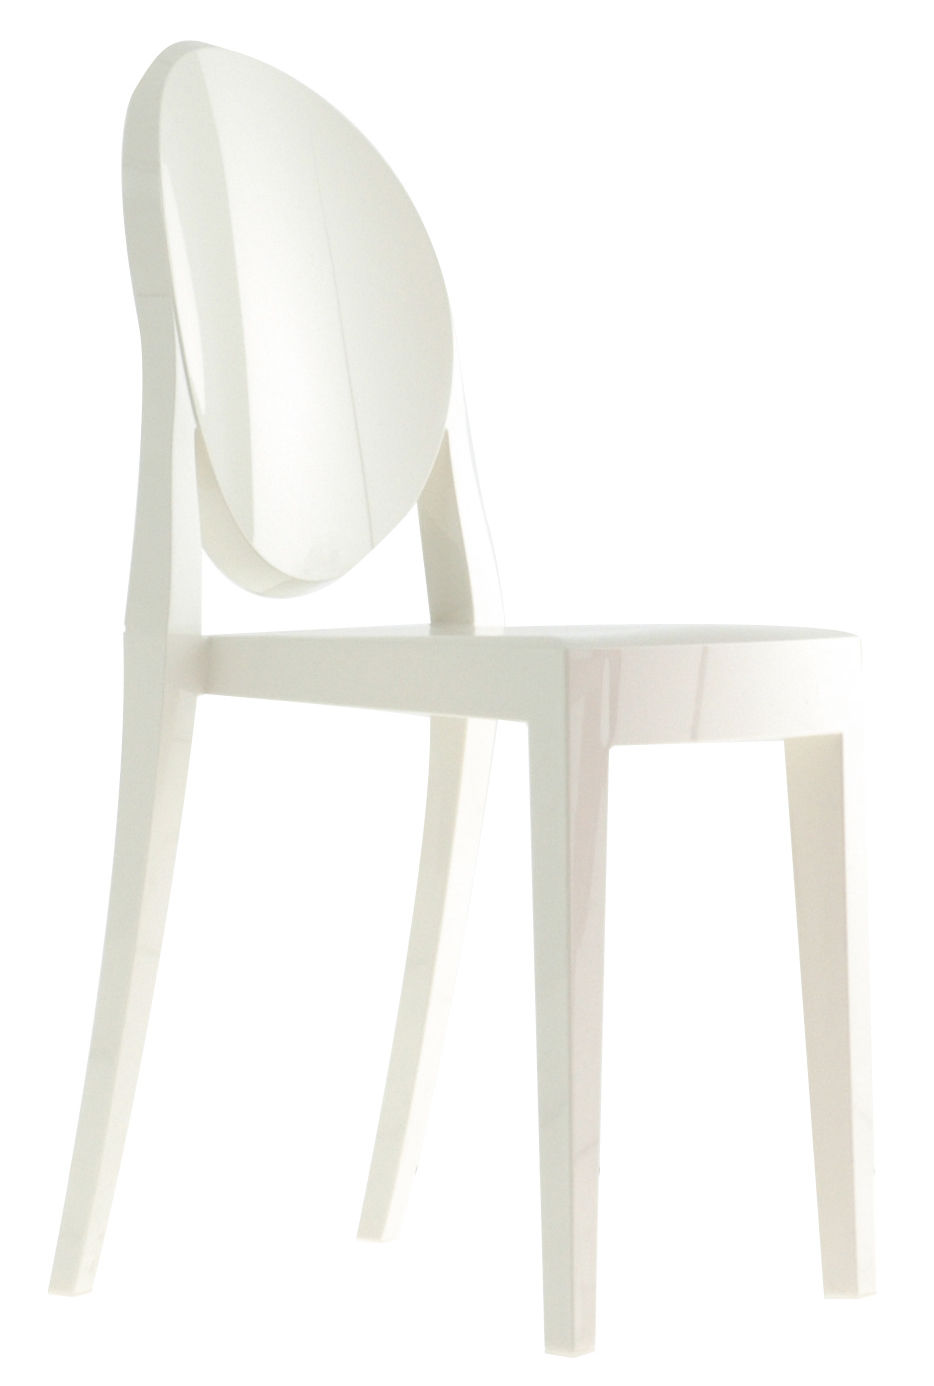 Furniture - Chairs - Victoria Ghost Stacking chair - opaque/ Polycarbonate by Kartell - Opaqua white - Polycarbonate